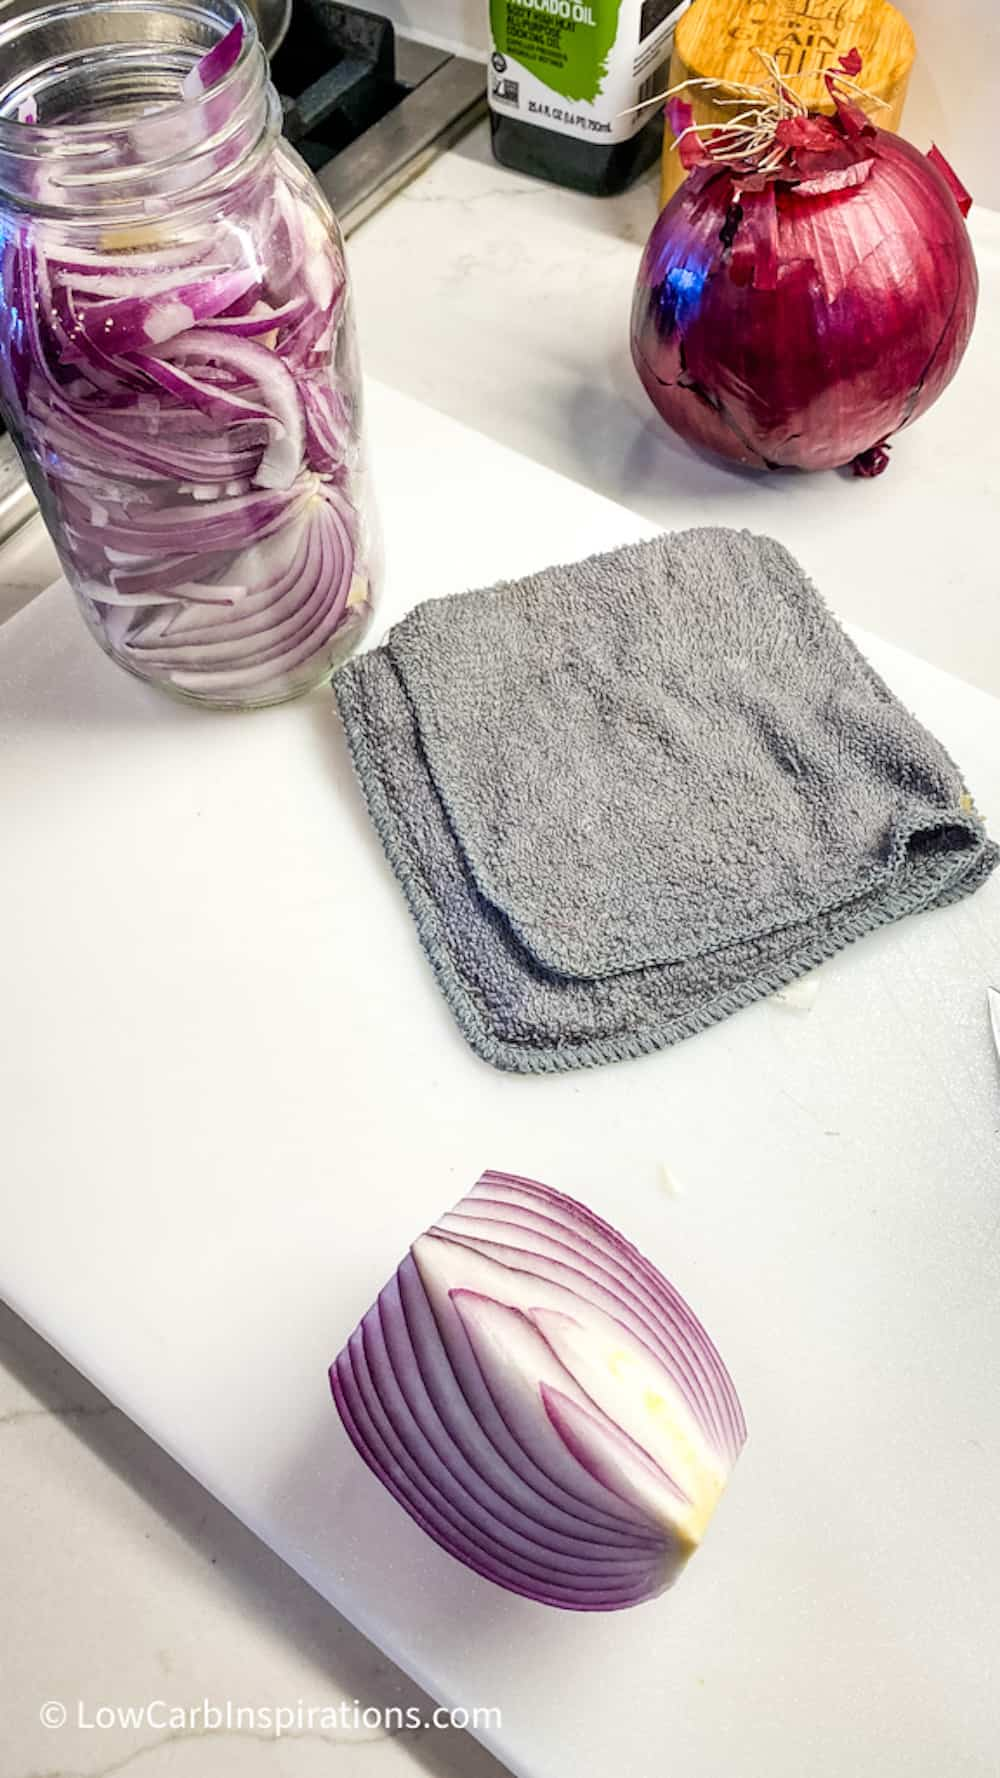 Dish towel next to cut red onions